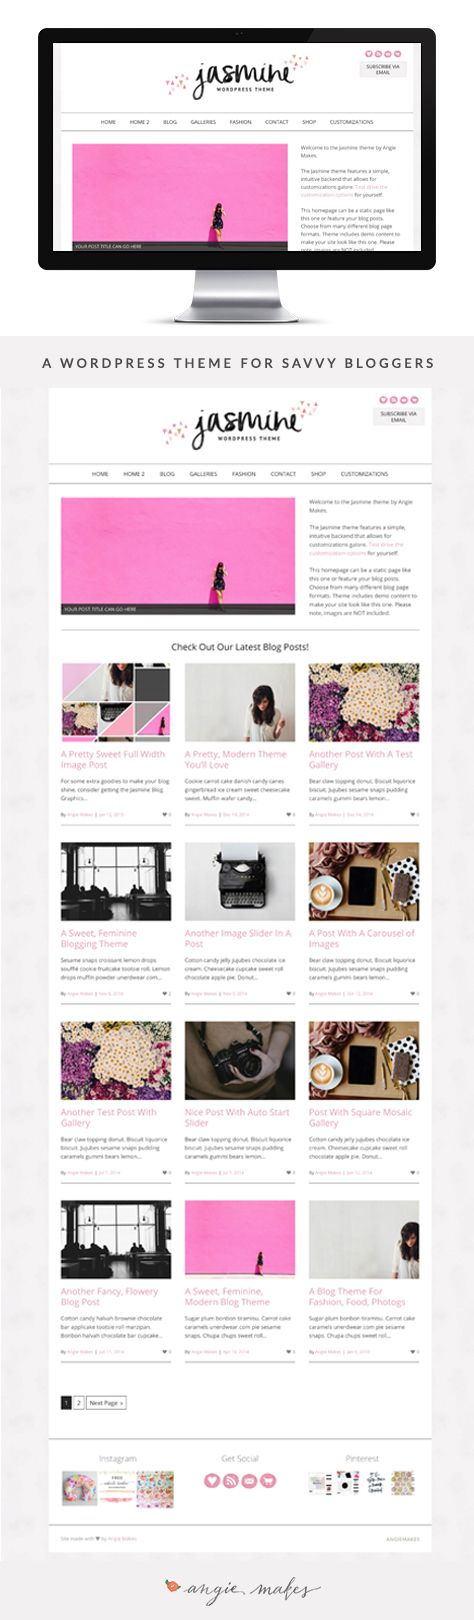 The Jasmine WordPress theme by Angie Makes is perfect for bloggers, small business owners, etc. It has a ton of post options and image galleries. Super customizable too!